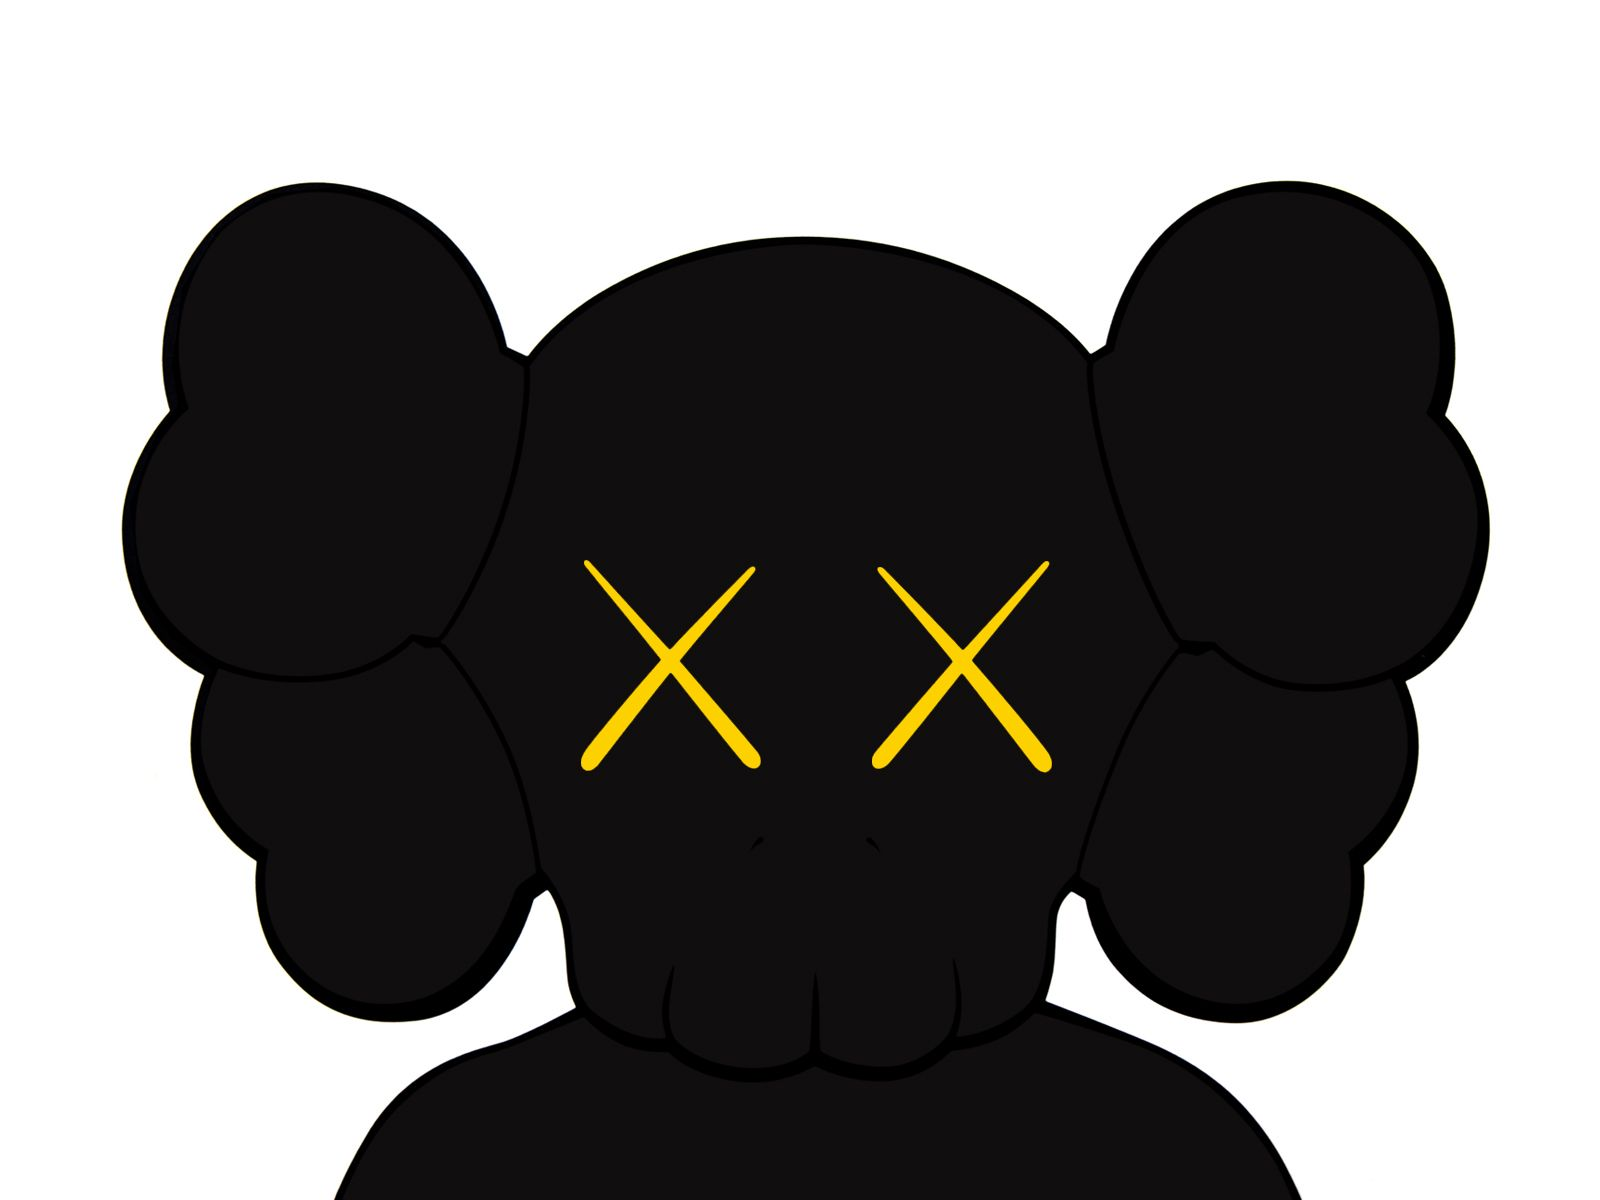 Kaws Companion Black Wallpaper Black Art Companion Kaws Wallpaper Kaws Wallpaper Kaws Painting Hypebeast Wallpaper